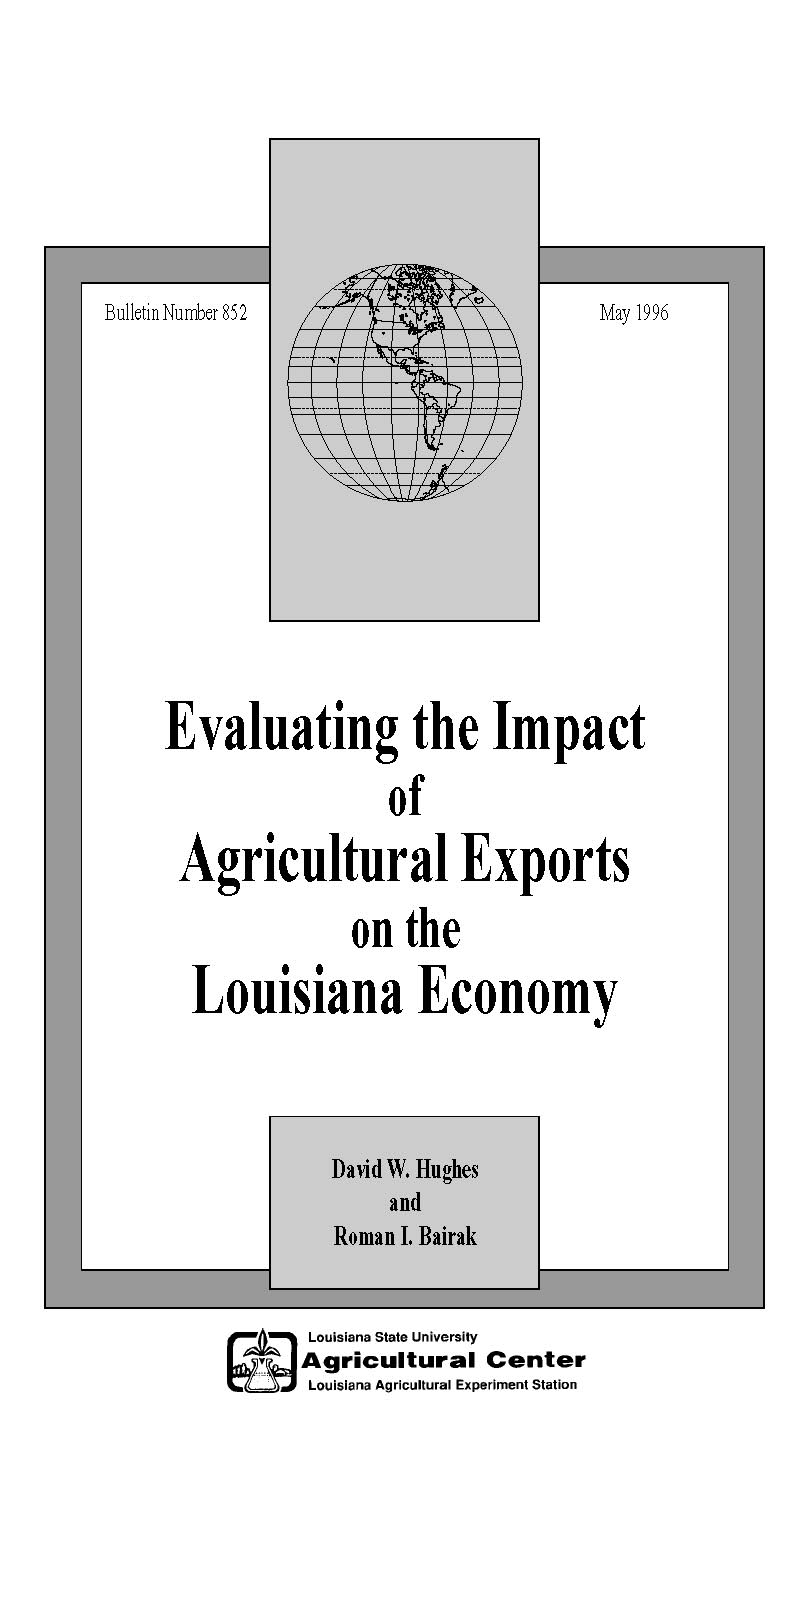 Evaluating the Impact of Agricultural Exports on the Louisiana Economy (1996)